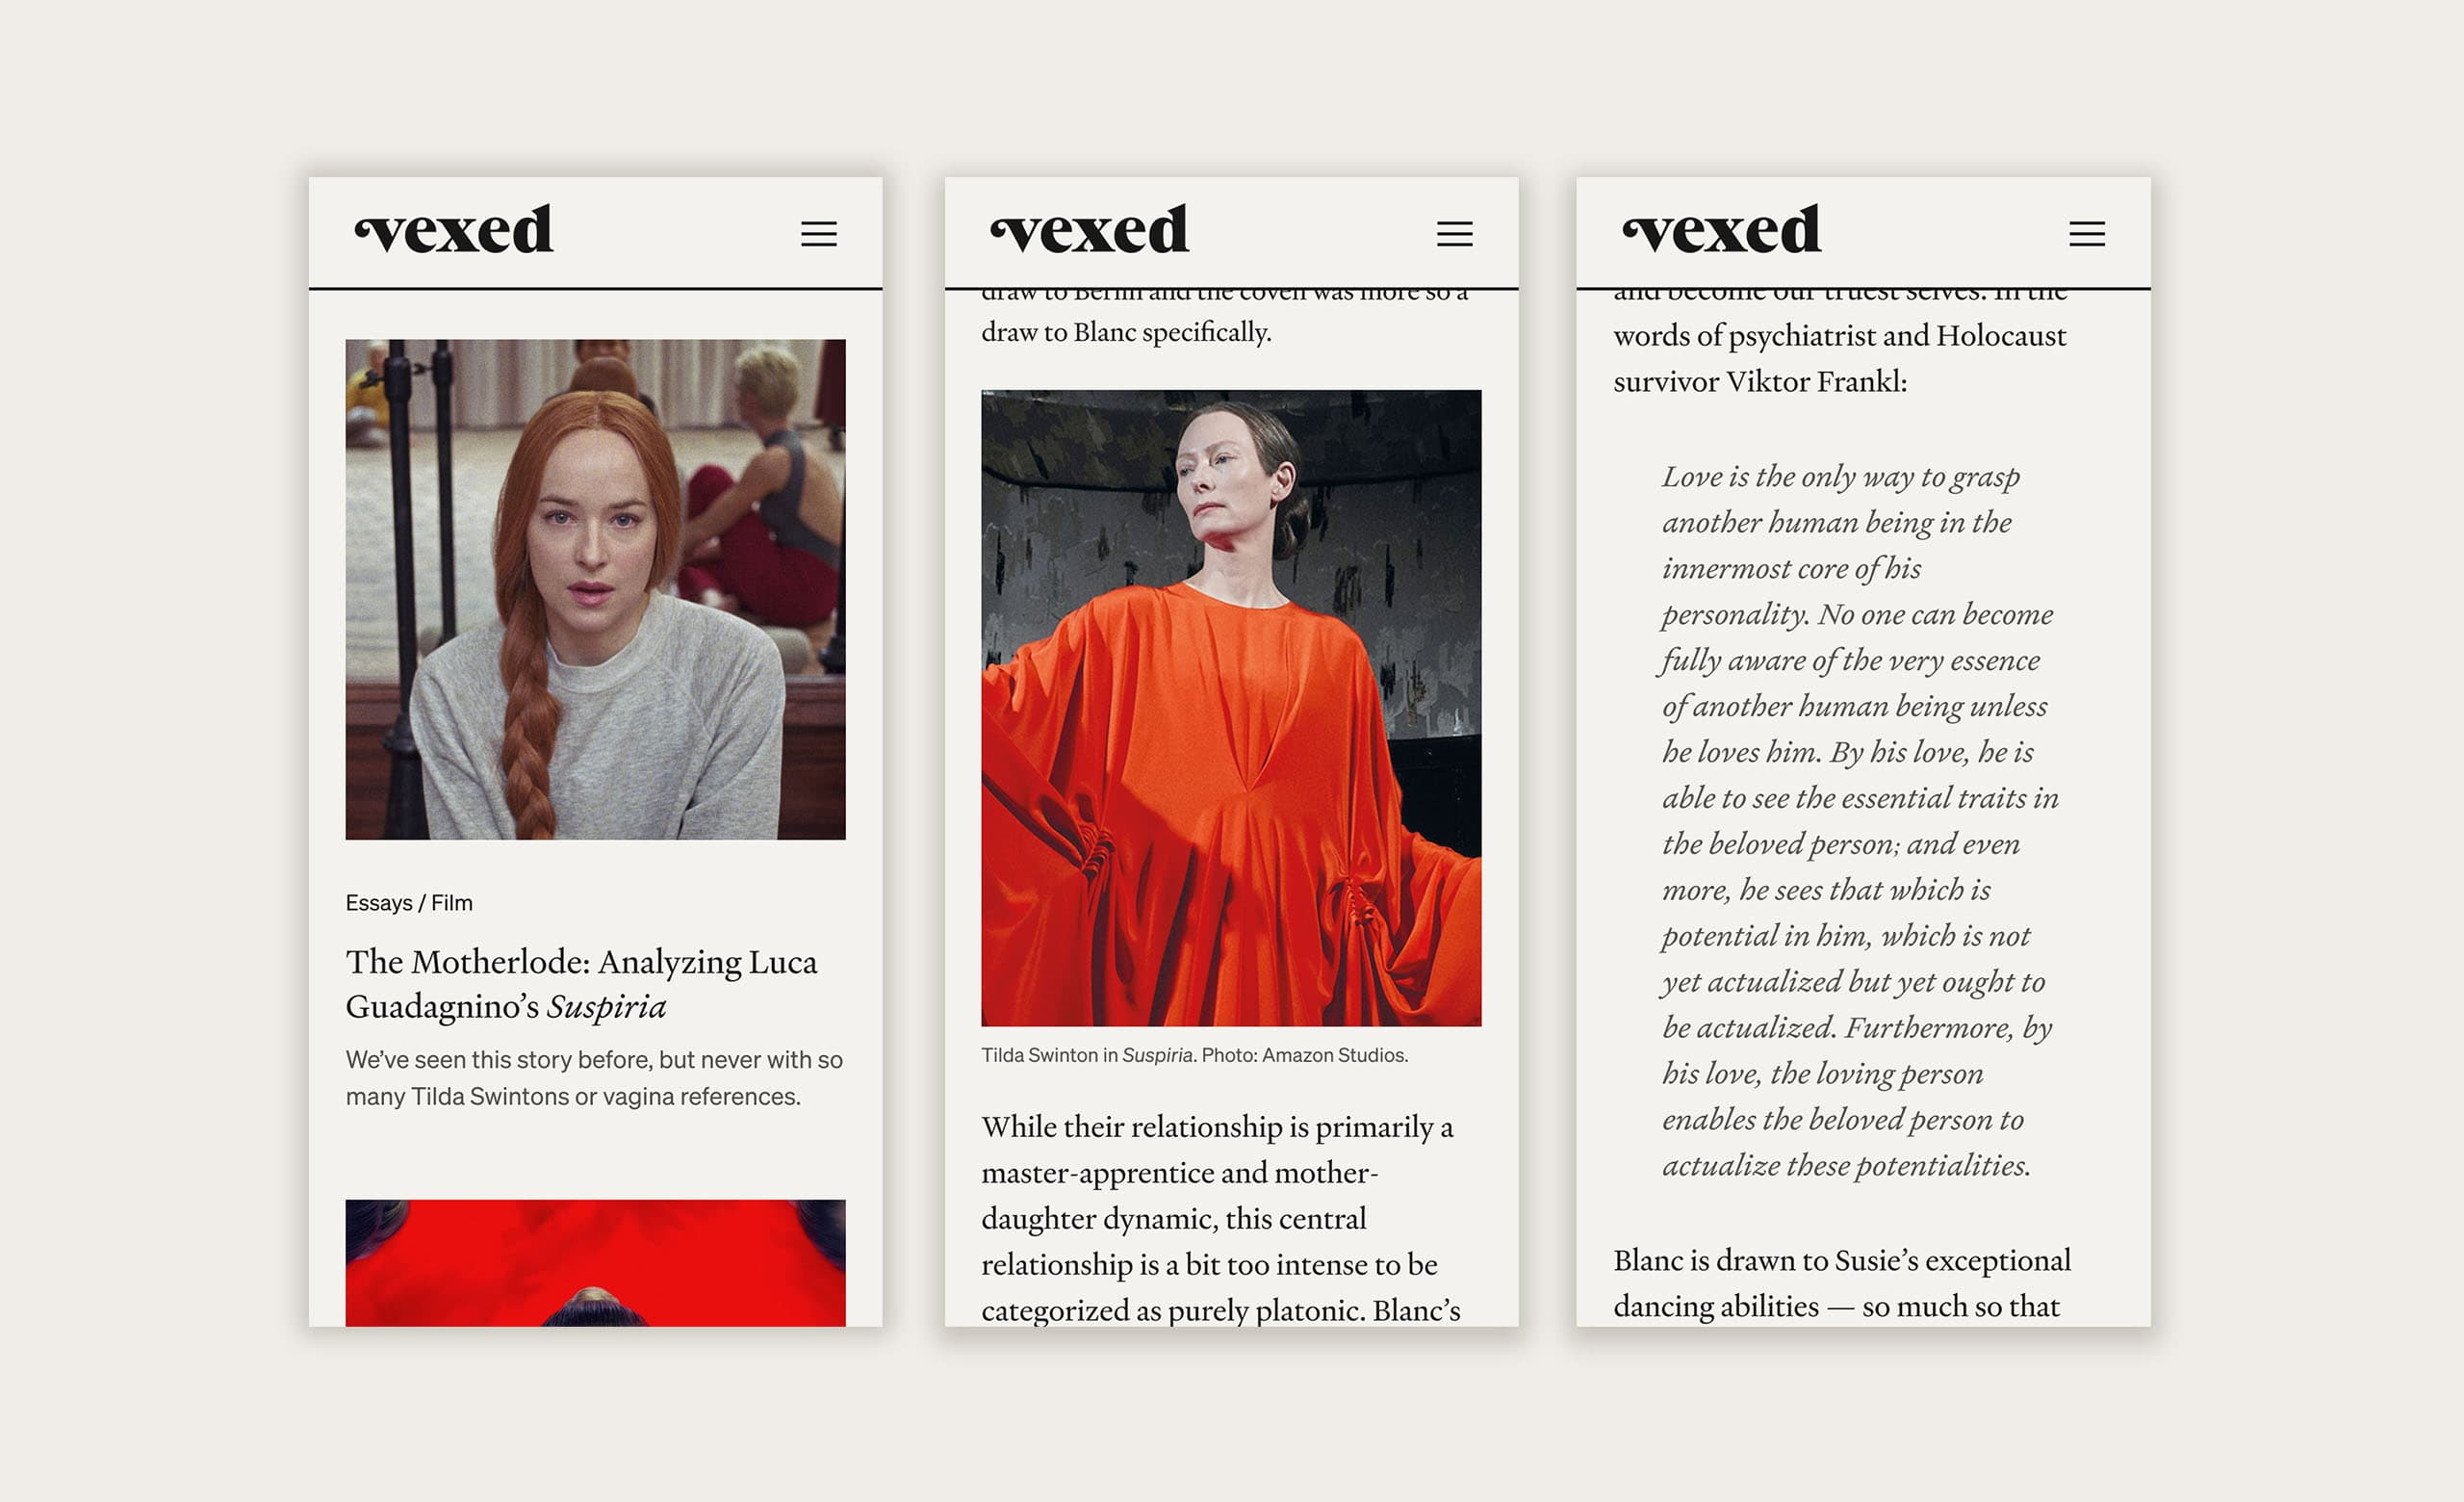 The mobile design for the Vexed website.